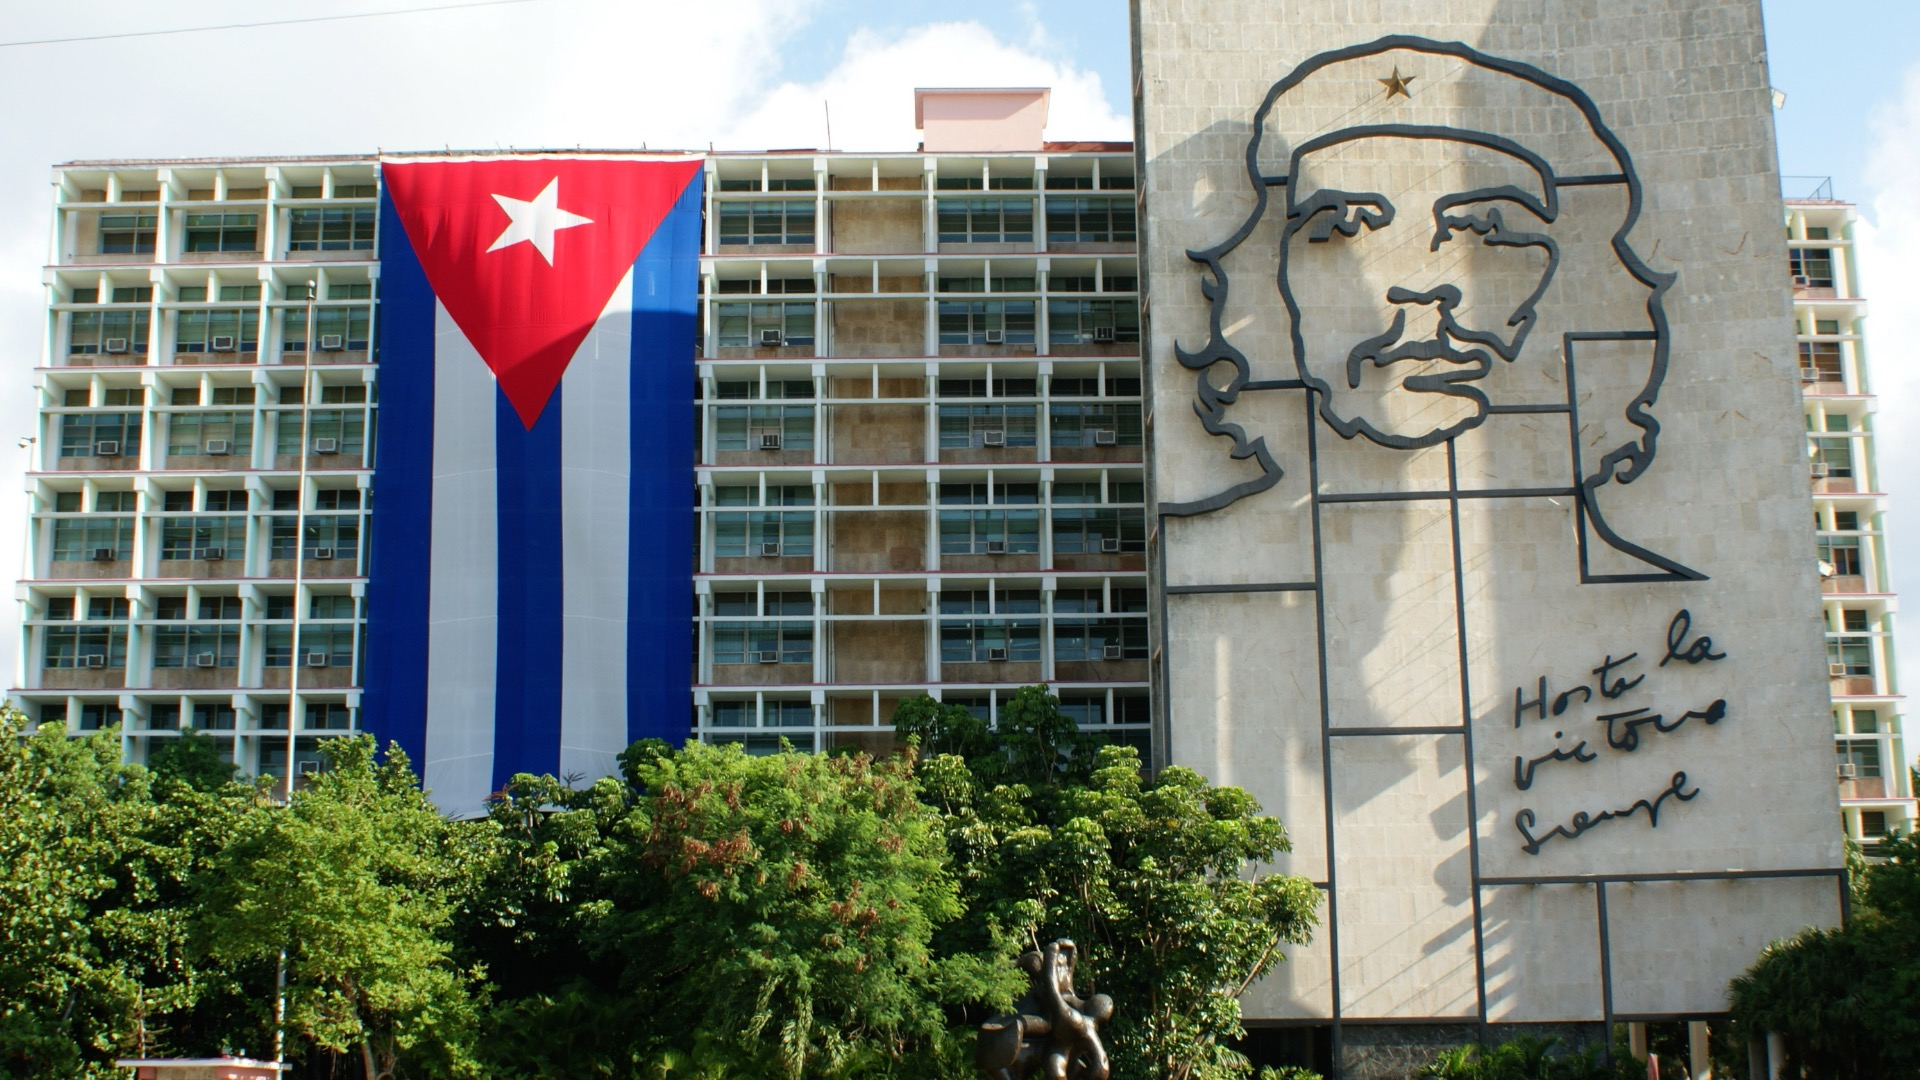 Cuba is in change: We are far away from the original Cuban Revolution